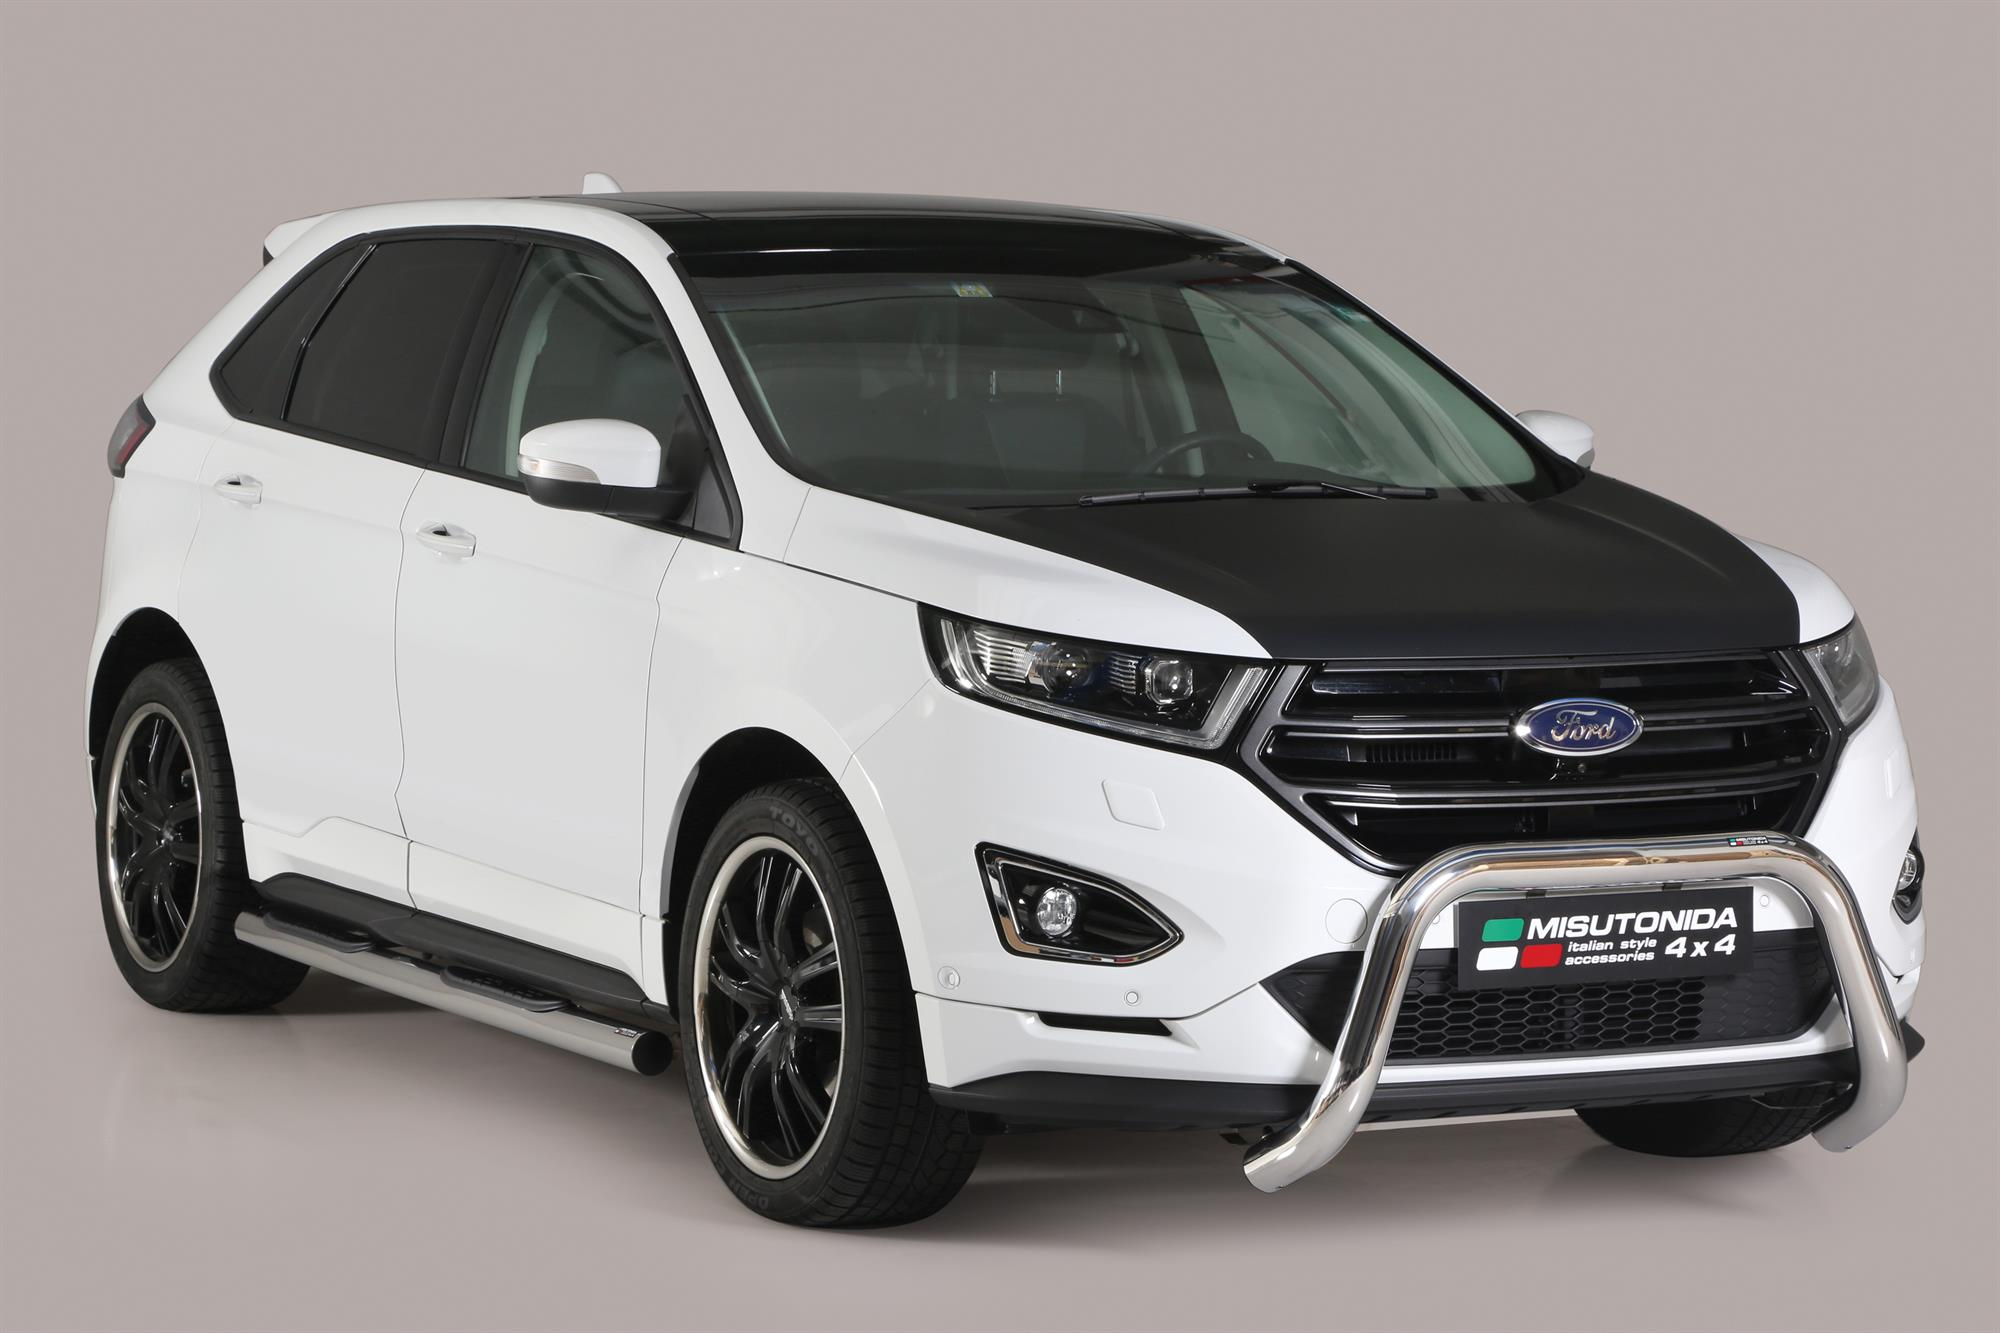 Ford edge 2017 on misutonida ec approved front bar 76mm stainless finish